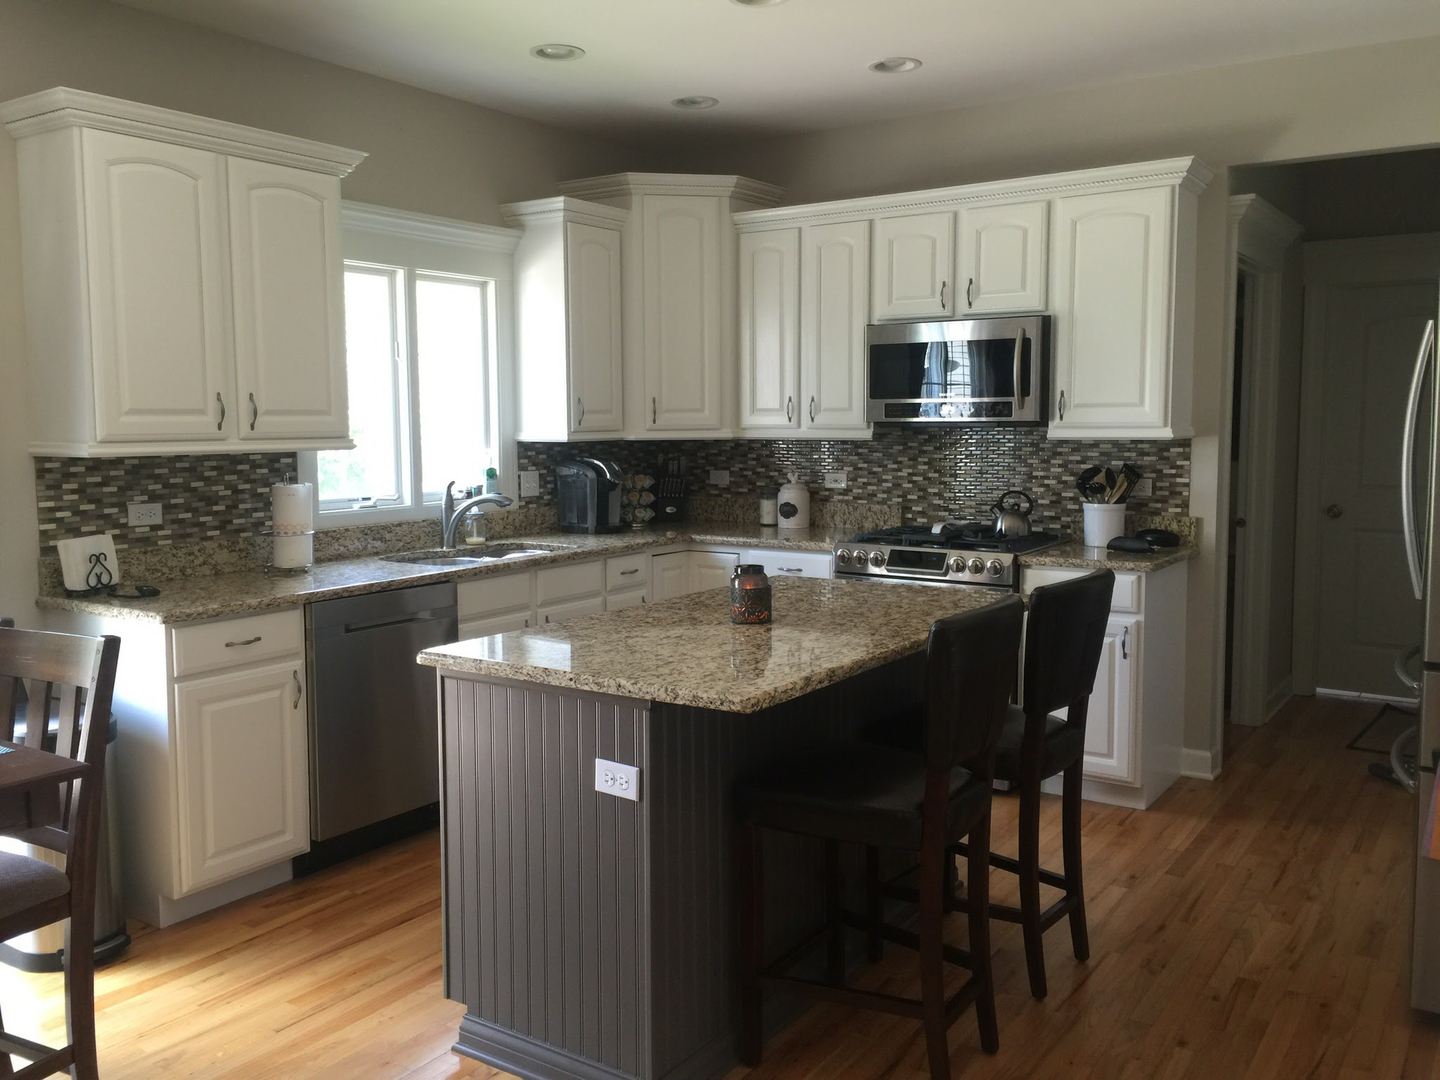 Kitchen Cabinets Photo Gallery Kammes Colorworks Cabinet Refinishing And Painting Elburn Il